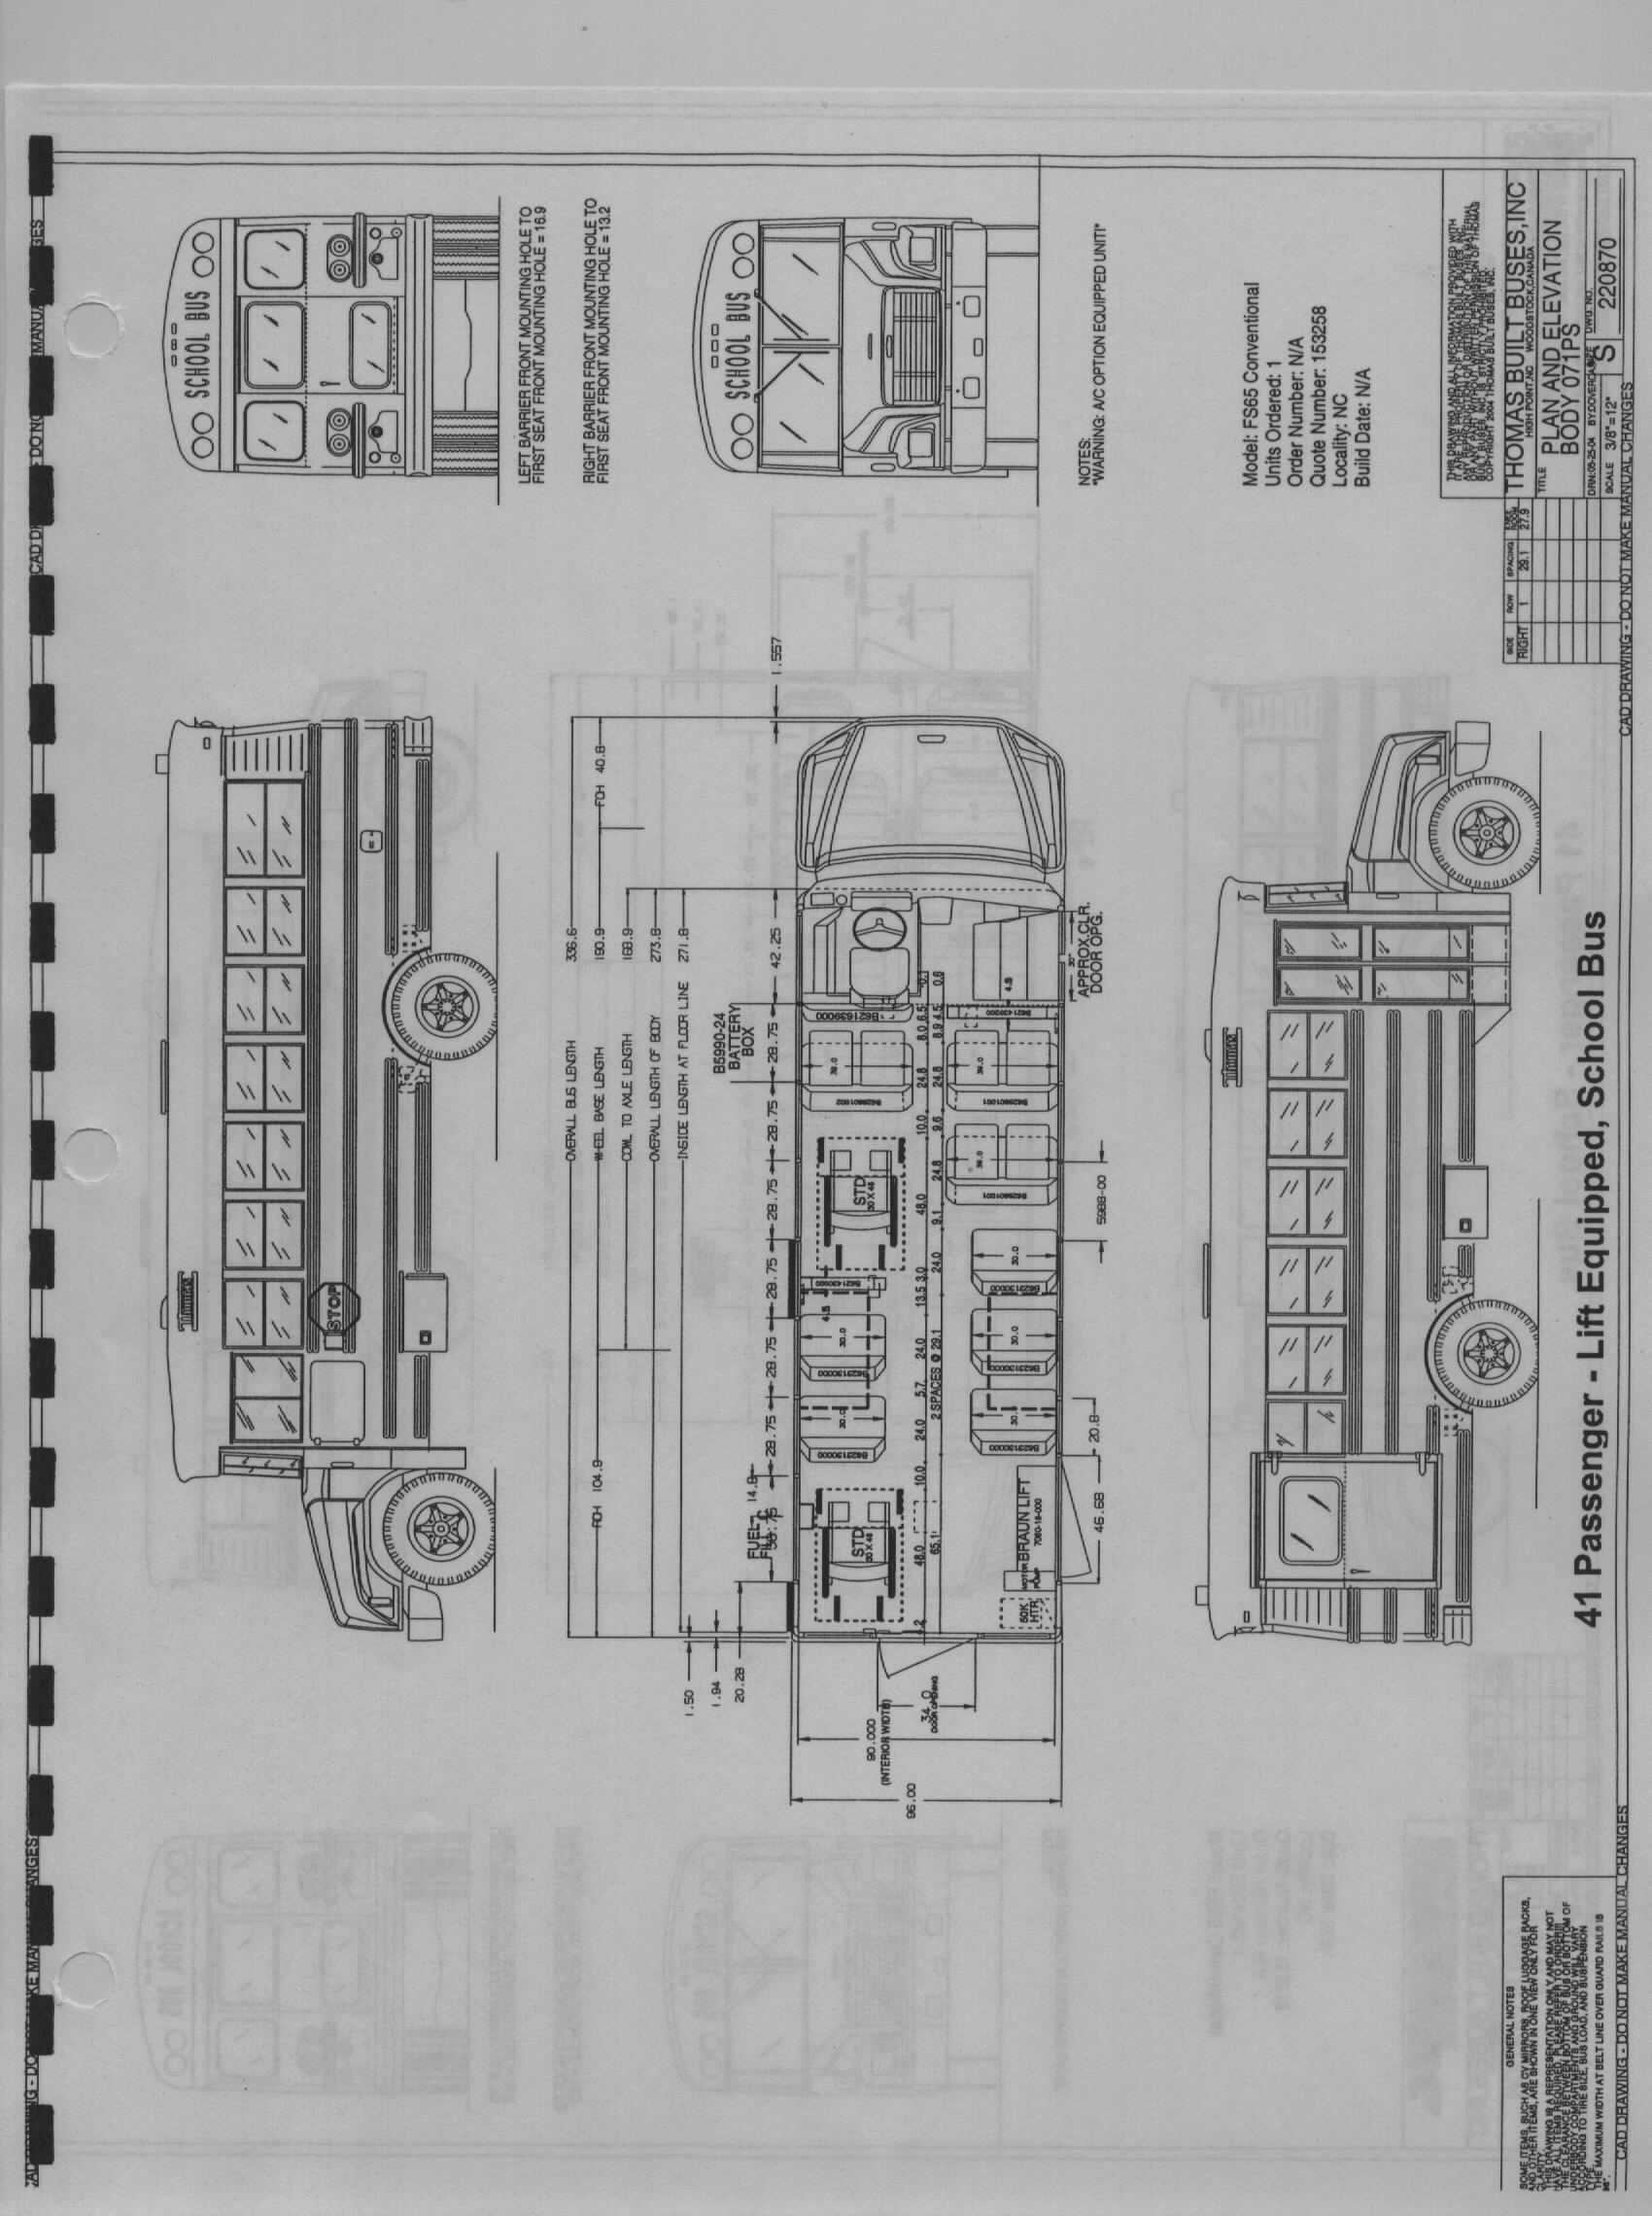 41 Lift school bus models wiring diagram for thomas built school bus at panicattacktreatment.co